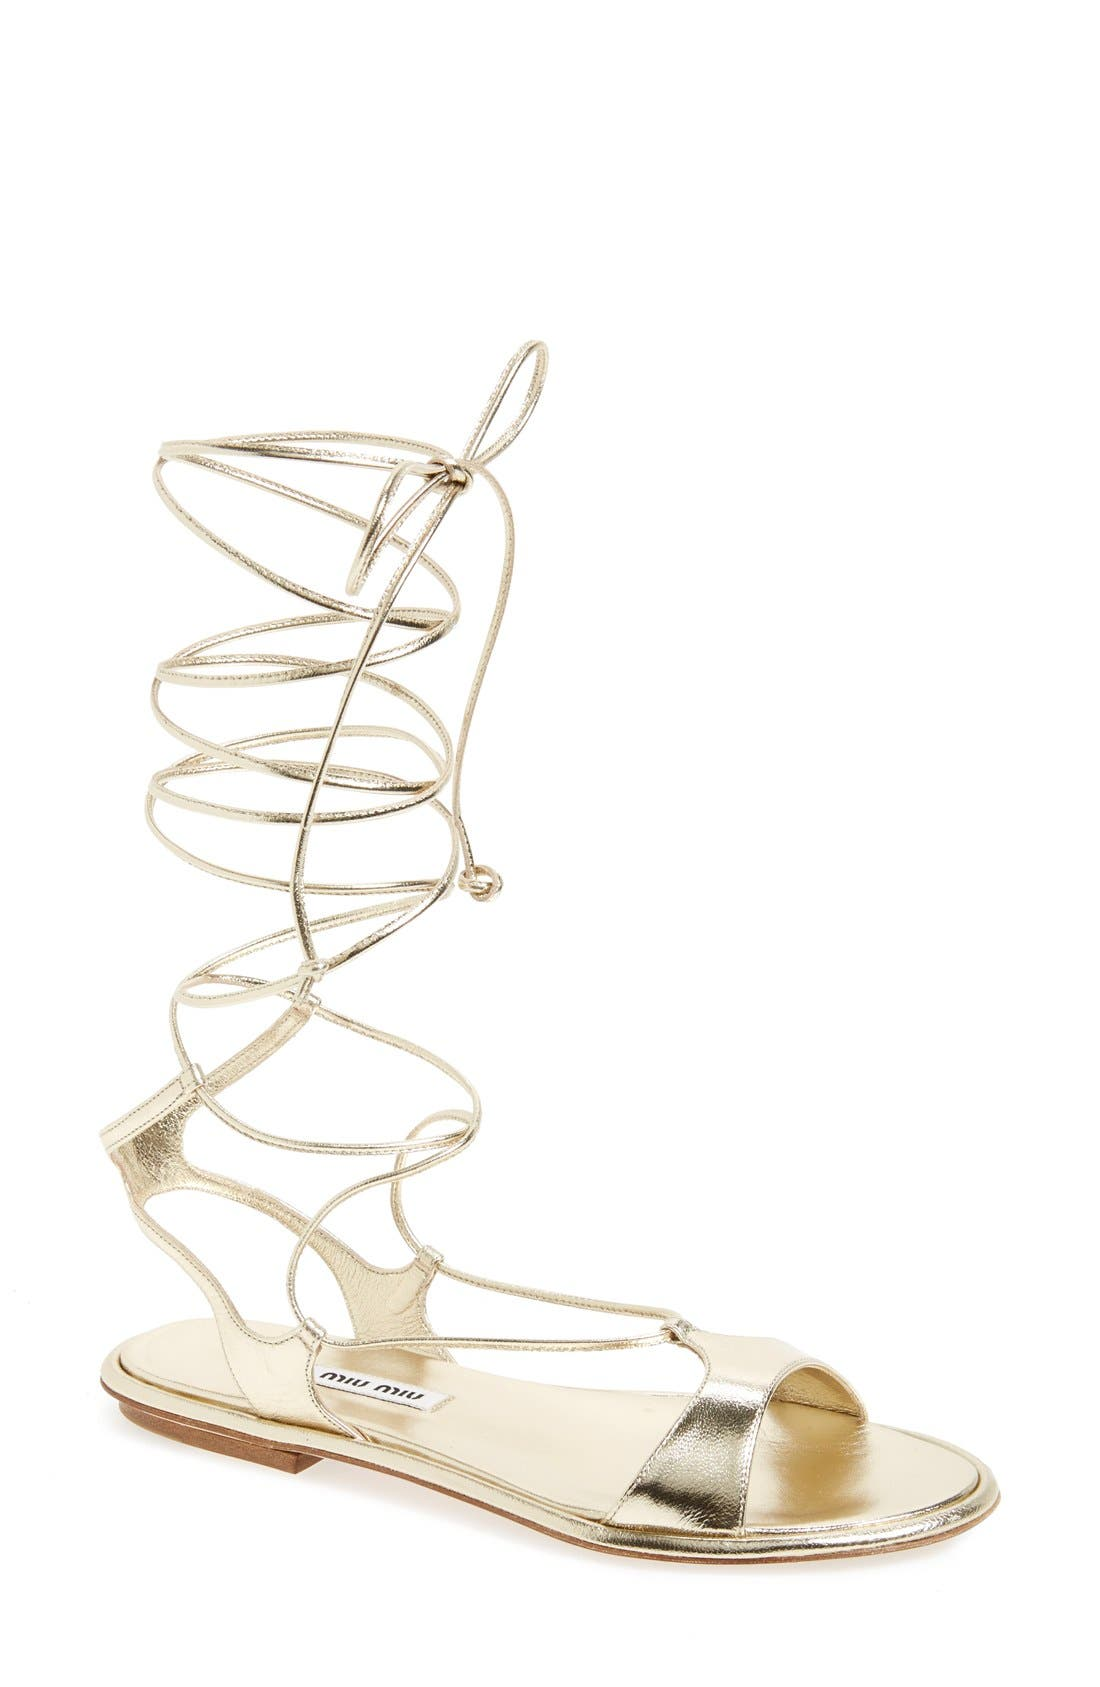 Alternate Image 1 Selected - Miu Miu Gladiator Sandal (Women)